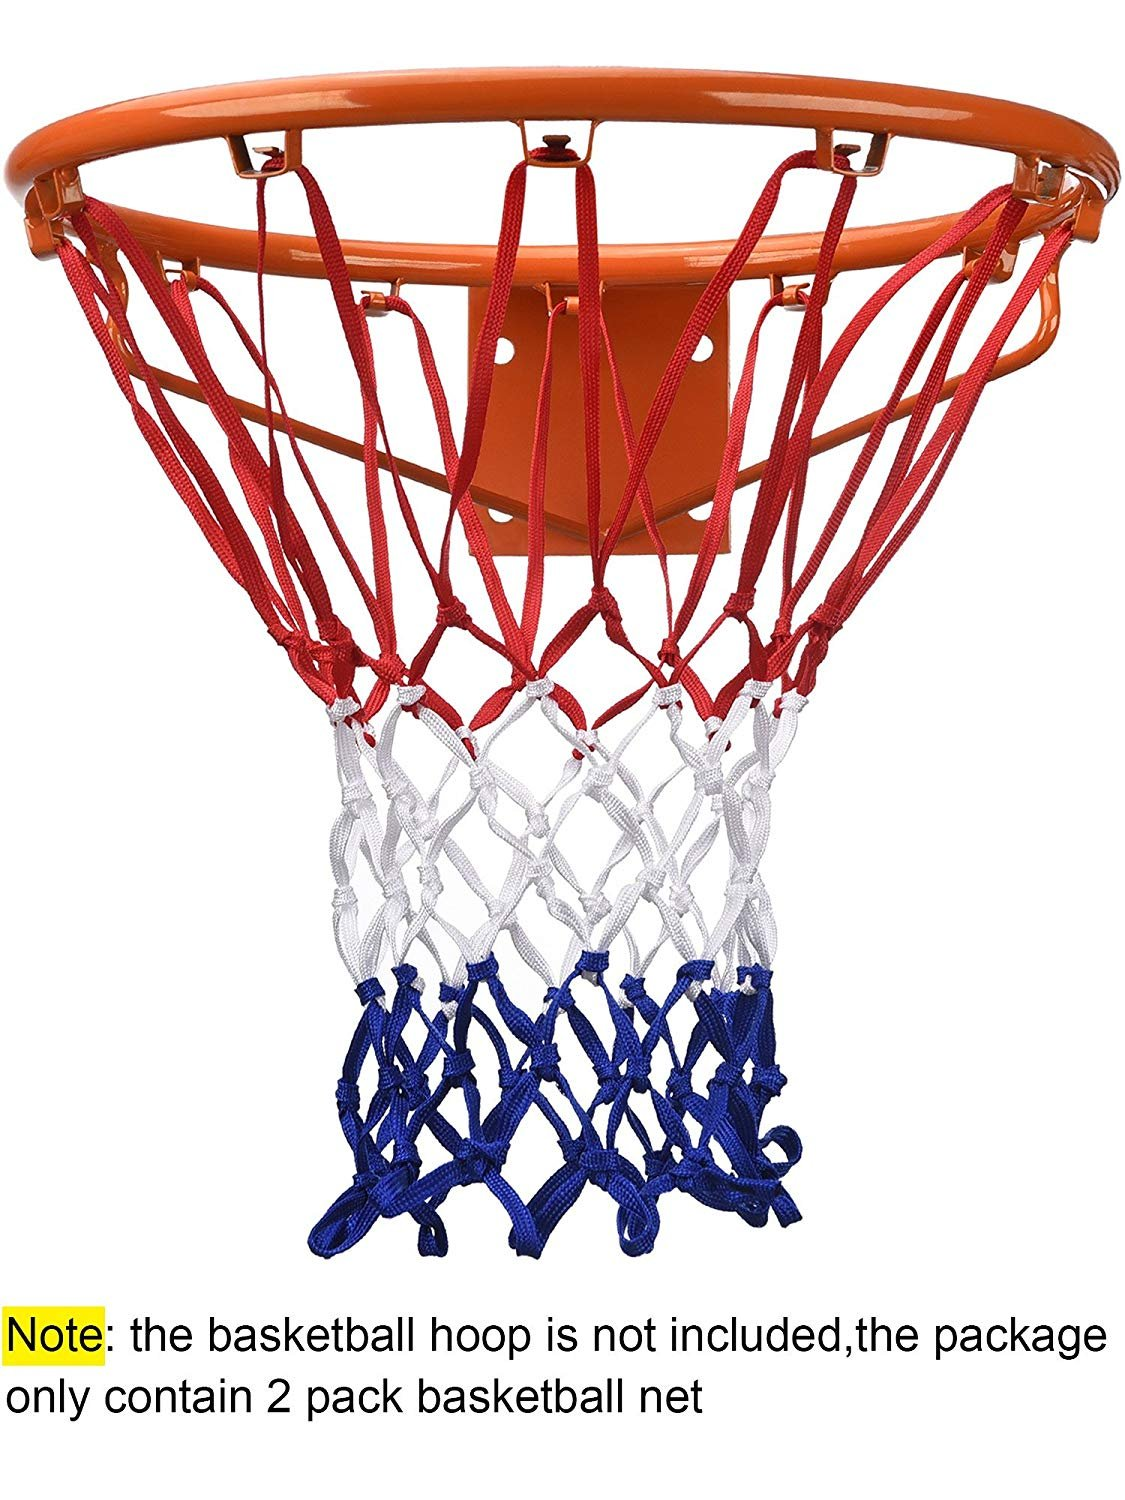 JHR-EU Basketball Basket Net Ring,Hang Ring Basketball Net Standard Strong and Durable Nylon Braided Multicolor Basketball Net for Outdoors or Indoors Sports 2 Pcs